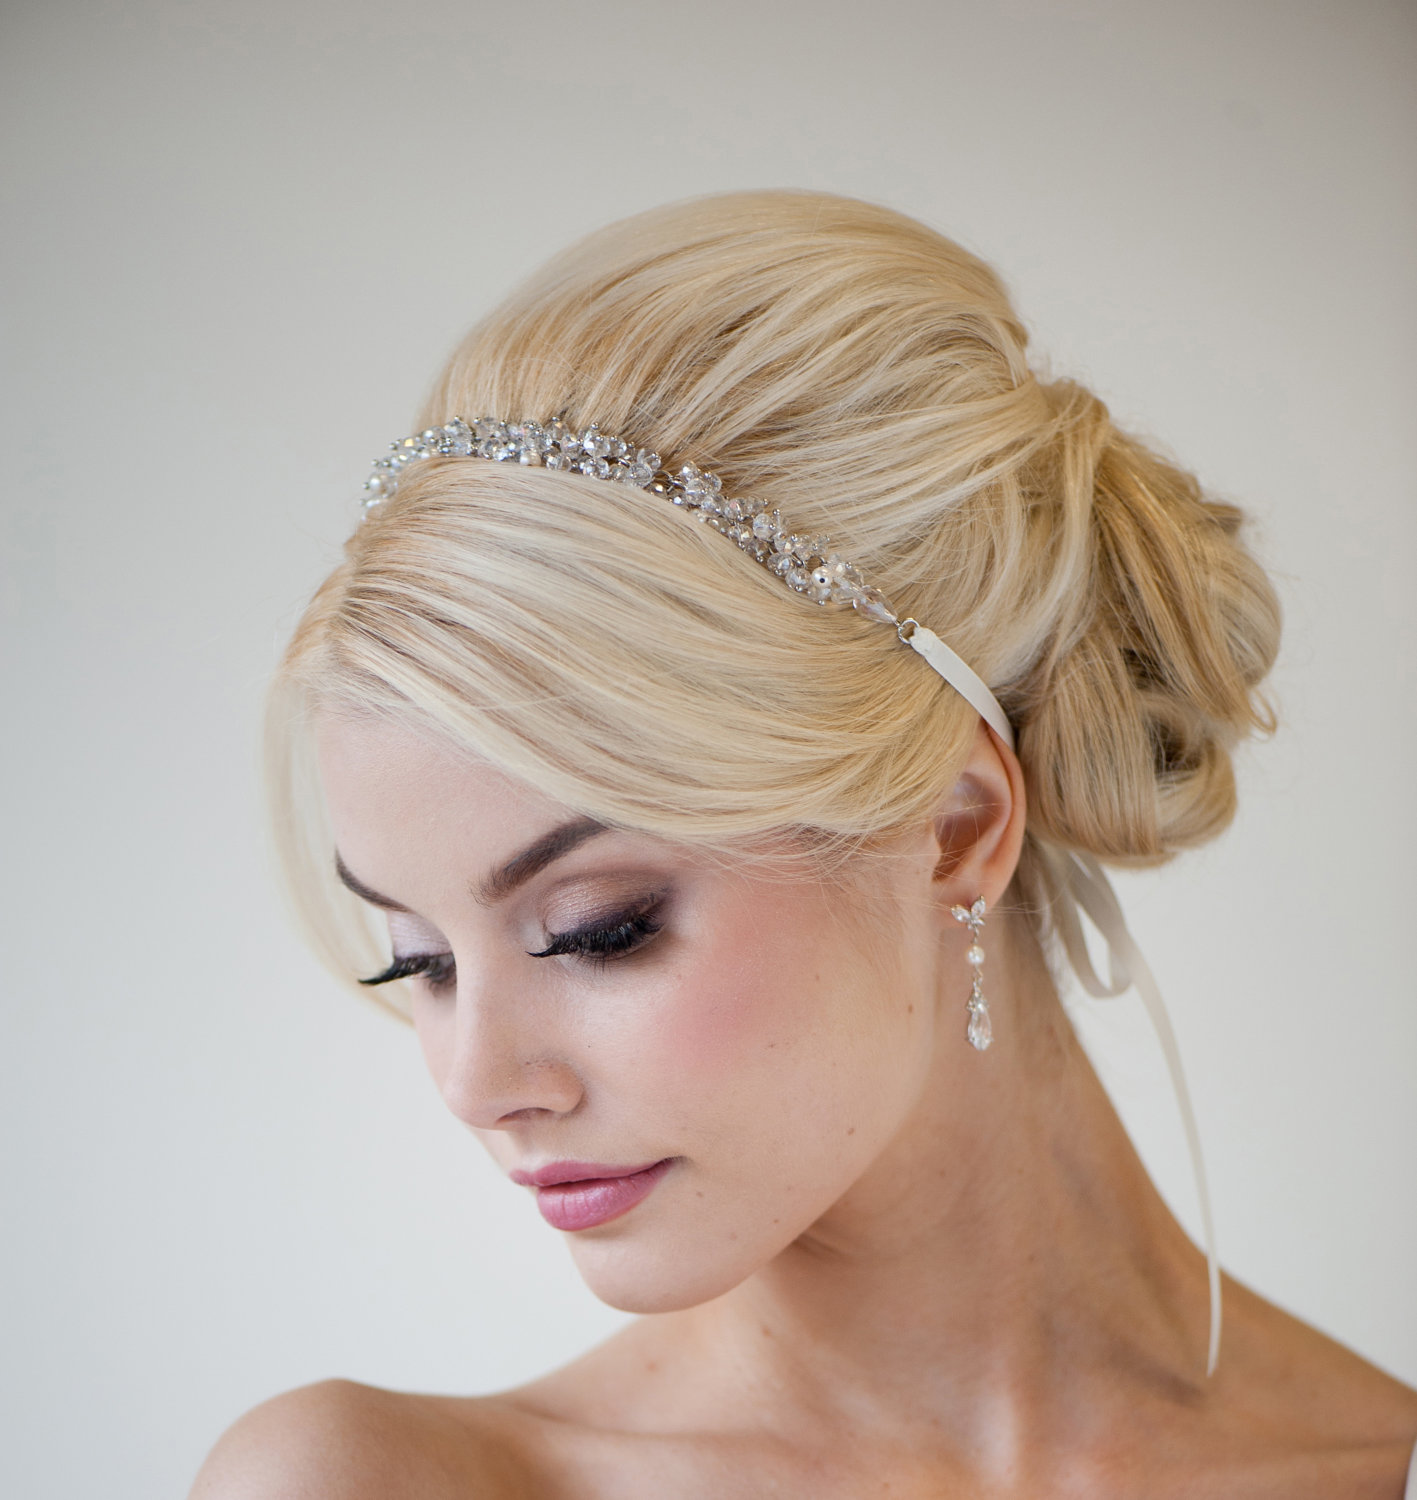 wedding-hairstyle-with-headband-0n4mgx1a-happy-valentines-day-2016-for-headband-hairstyles-v-cut-and-u-cut-hairstyles